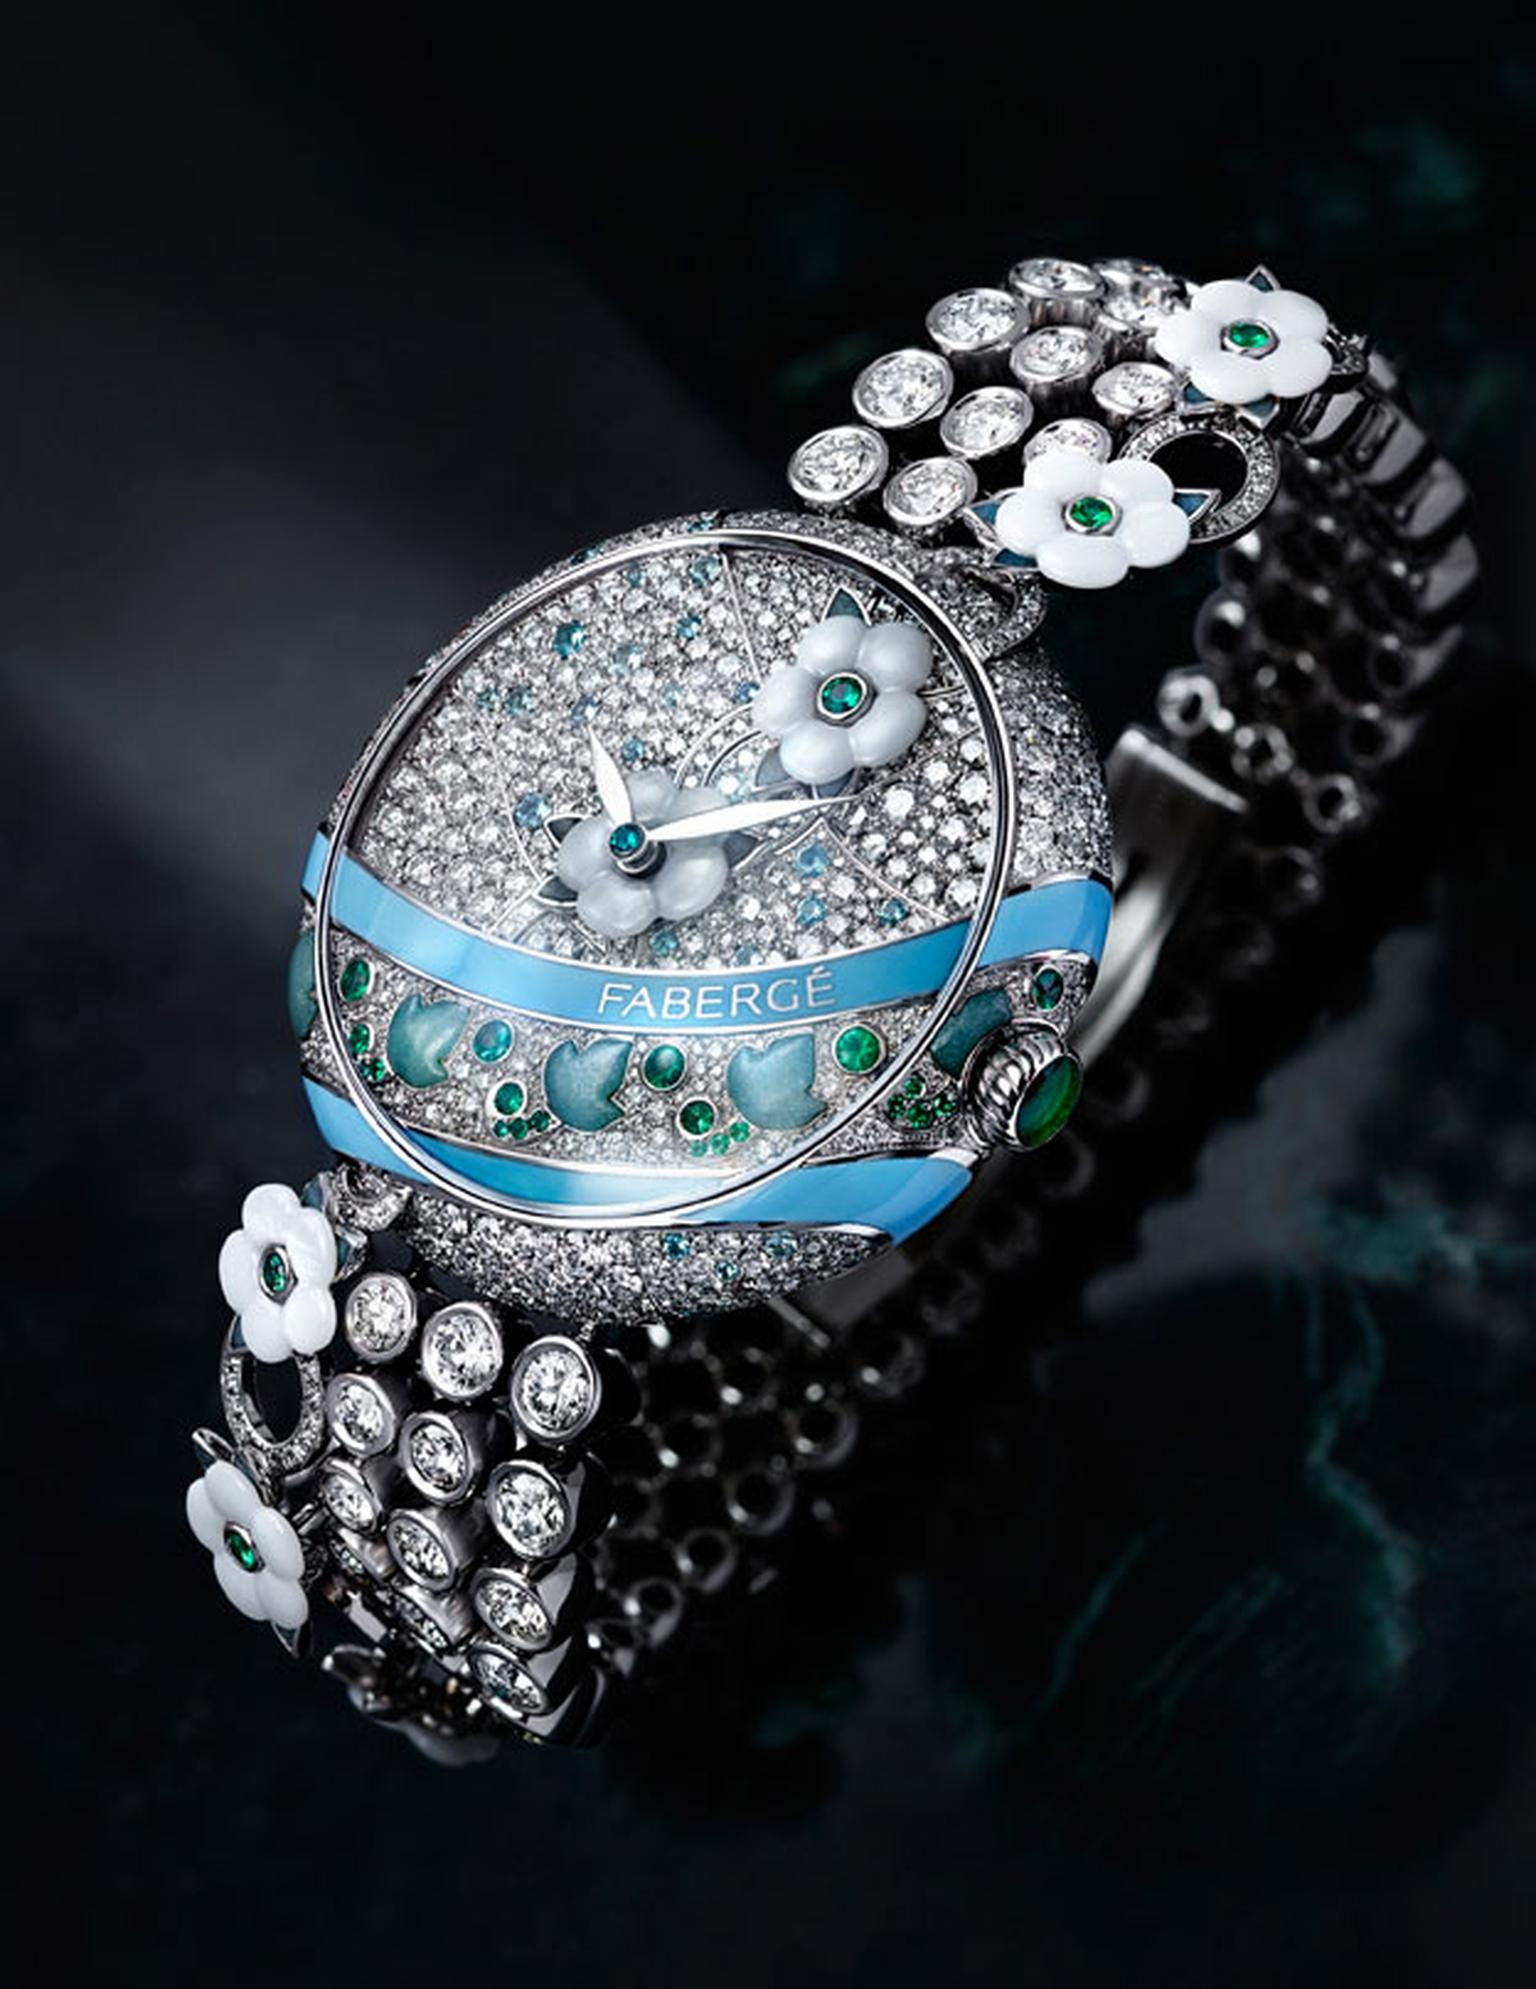 Baselworld-high-jewellery-watches_Faberge-Summer-in-Provence_side.jpg